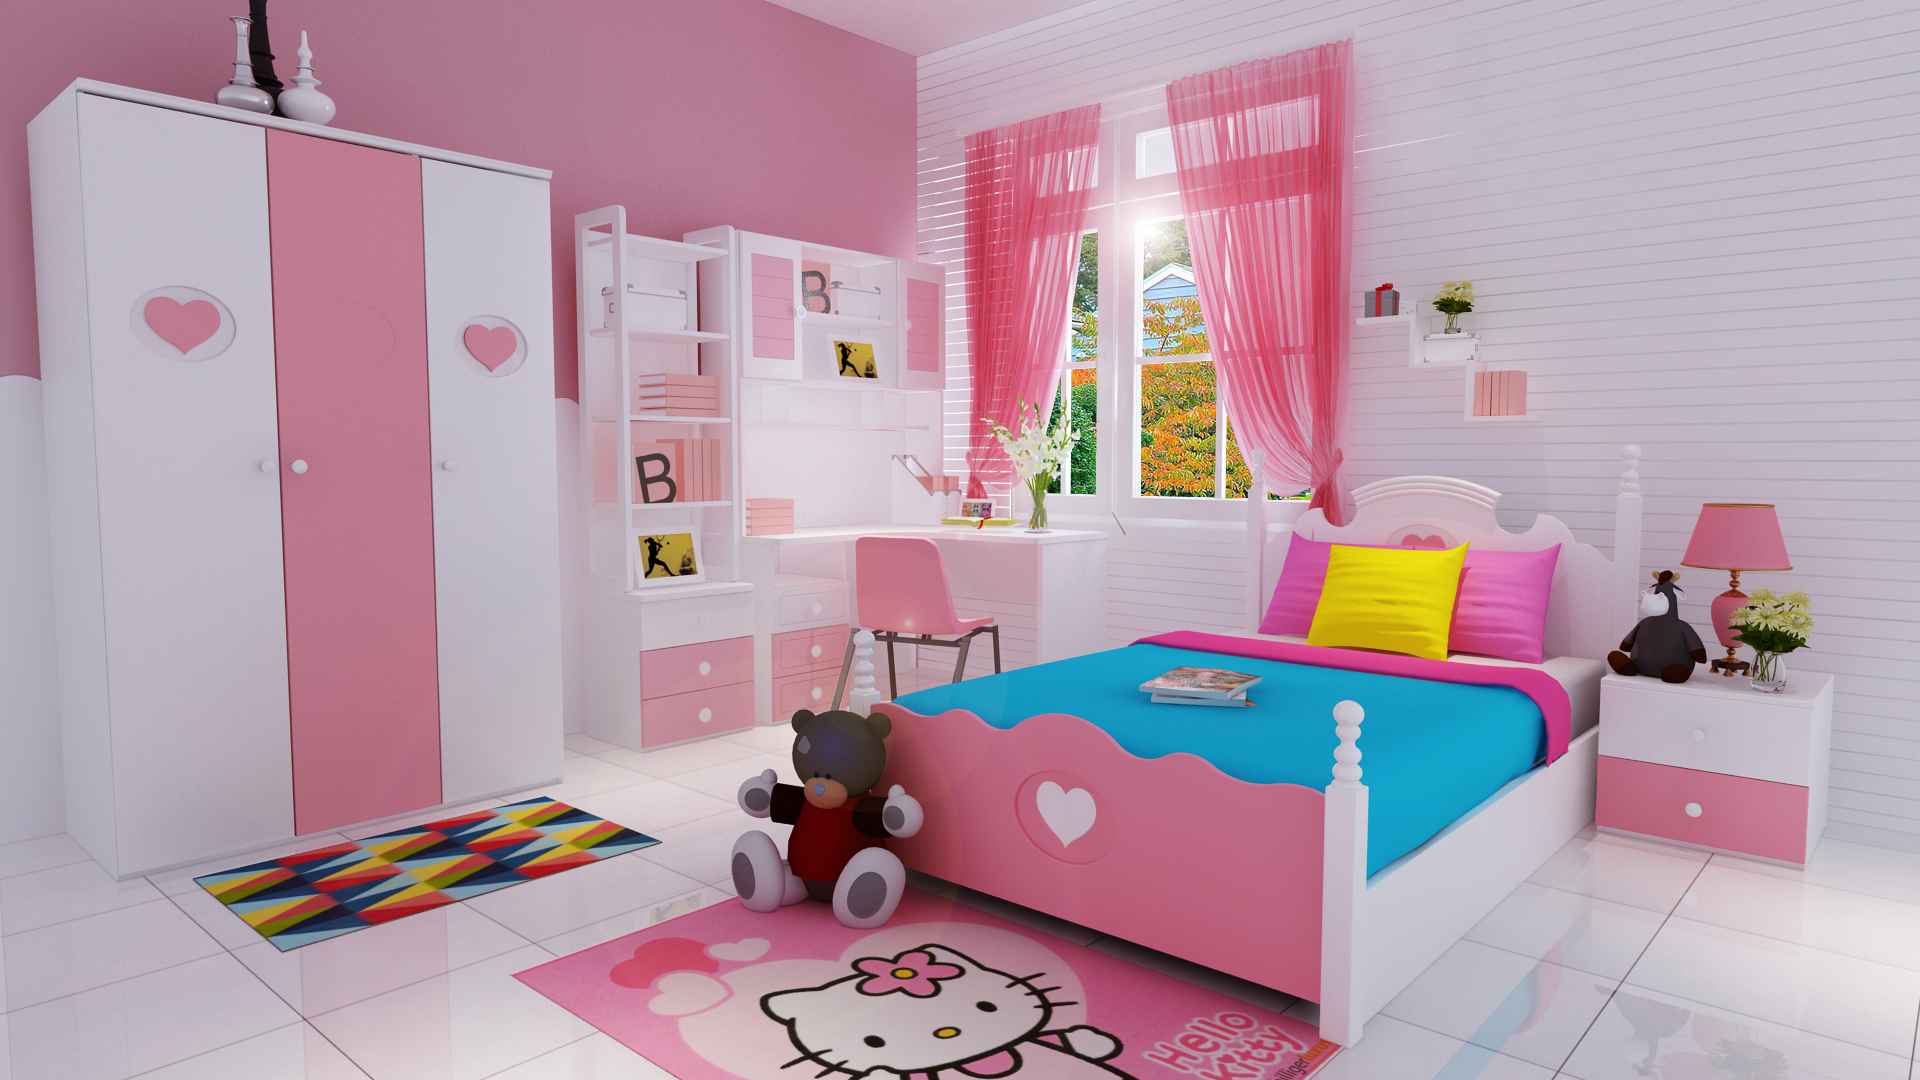 Kids Bedroom Ideas Kids Room Decor Kids Room Study Table Design - Decor for kids room